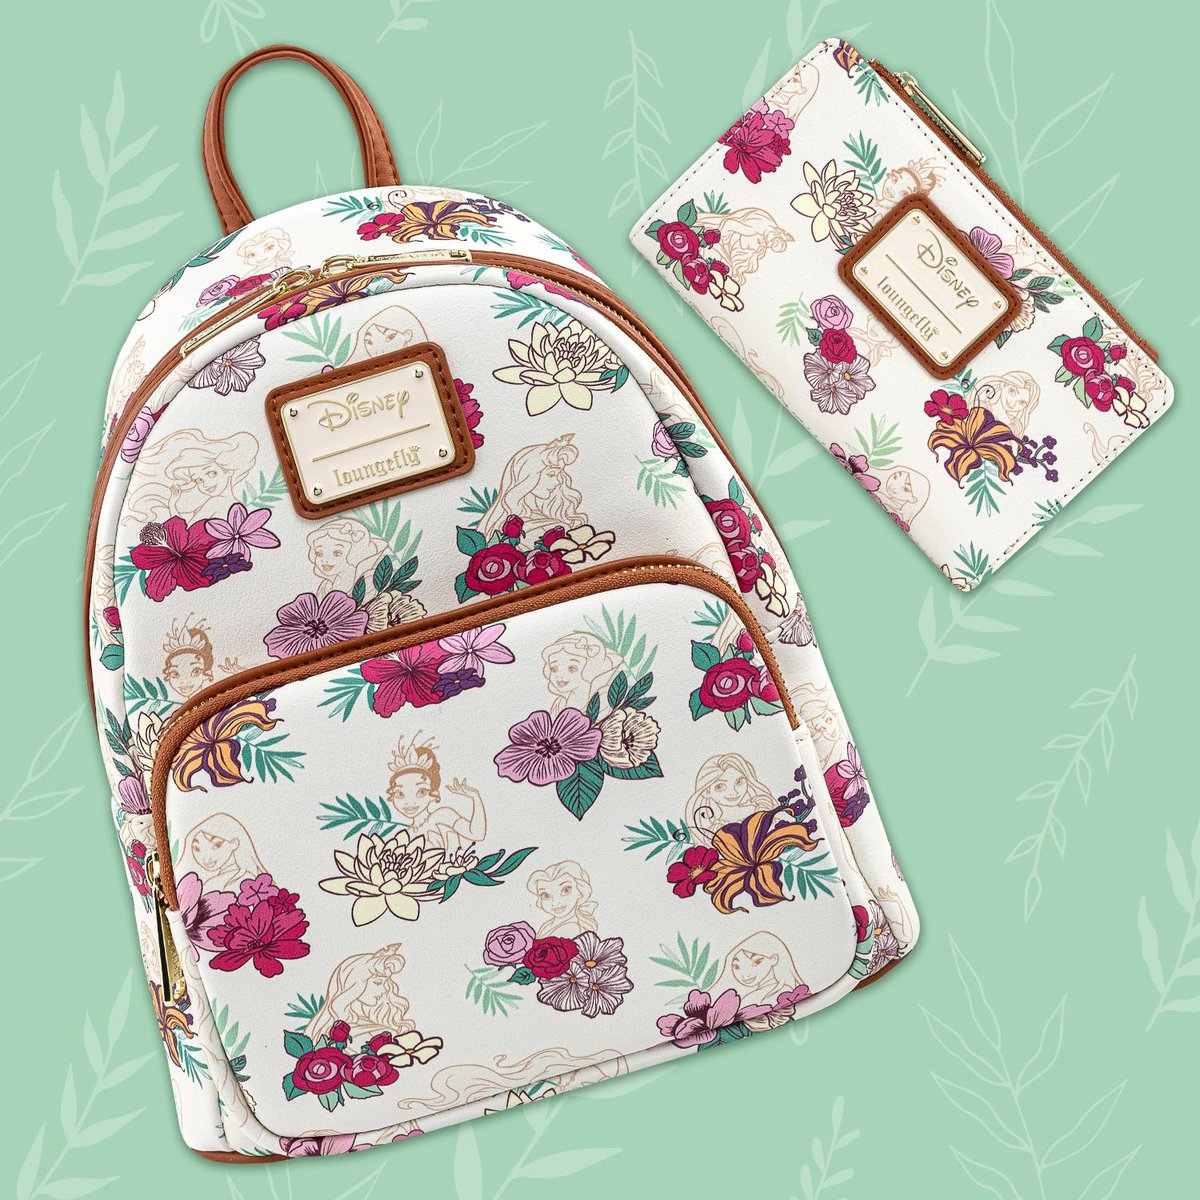 The new floral Disney Princess collection is a dream come true! The royal floral all-over-print features all the gorgeous princesses! We are in love!!! 🥰 Shop today at bit.ly/37vvp7S! 🌸👑🌸 #Loungefly #Disney #DisneyPrincess